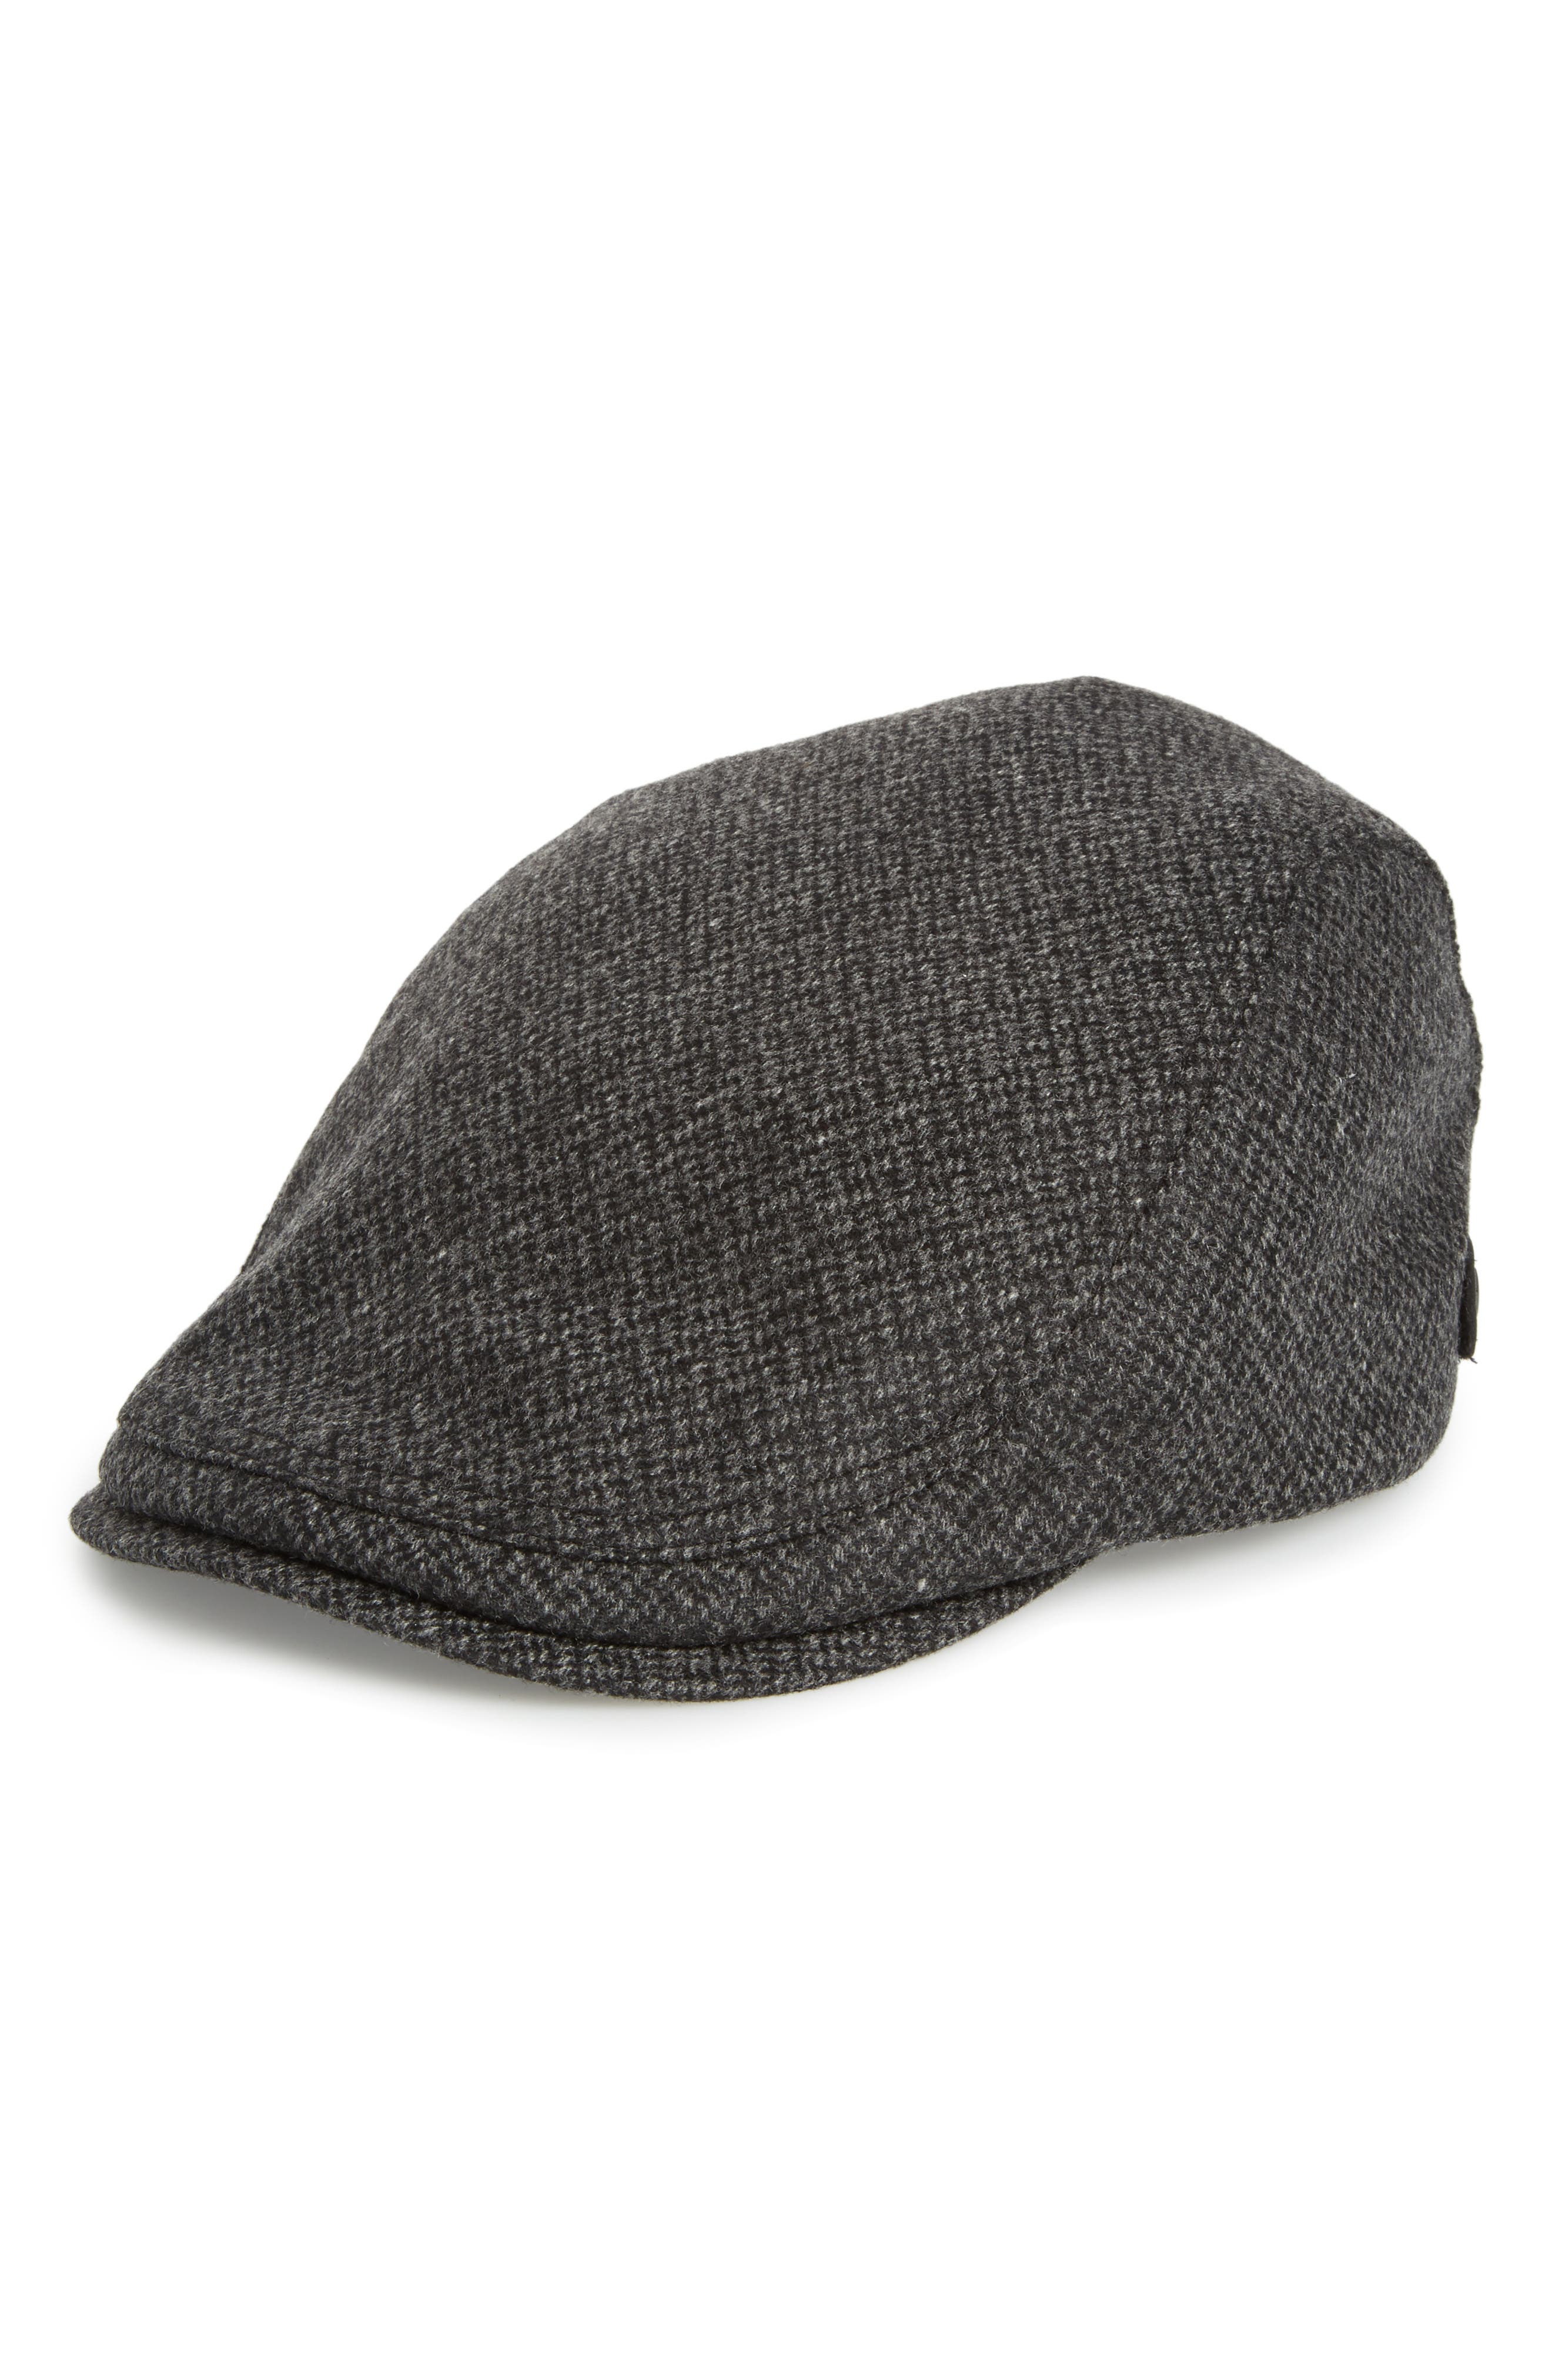 Alternate Image 1 Selected - Ted Baker Thompson Wool Blend Flat Driving Cap